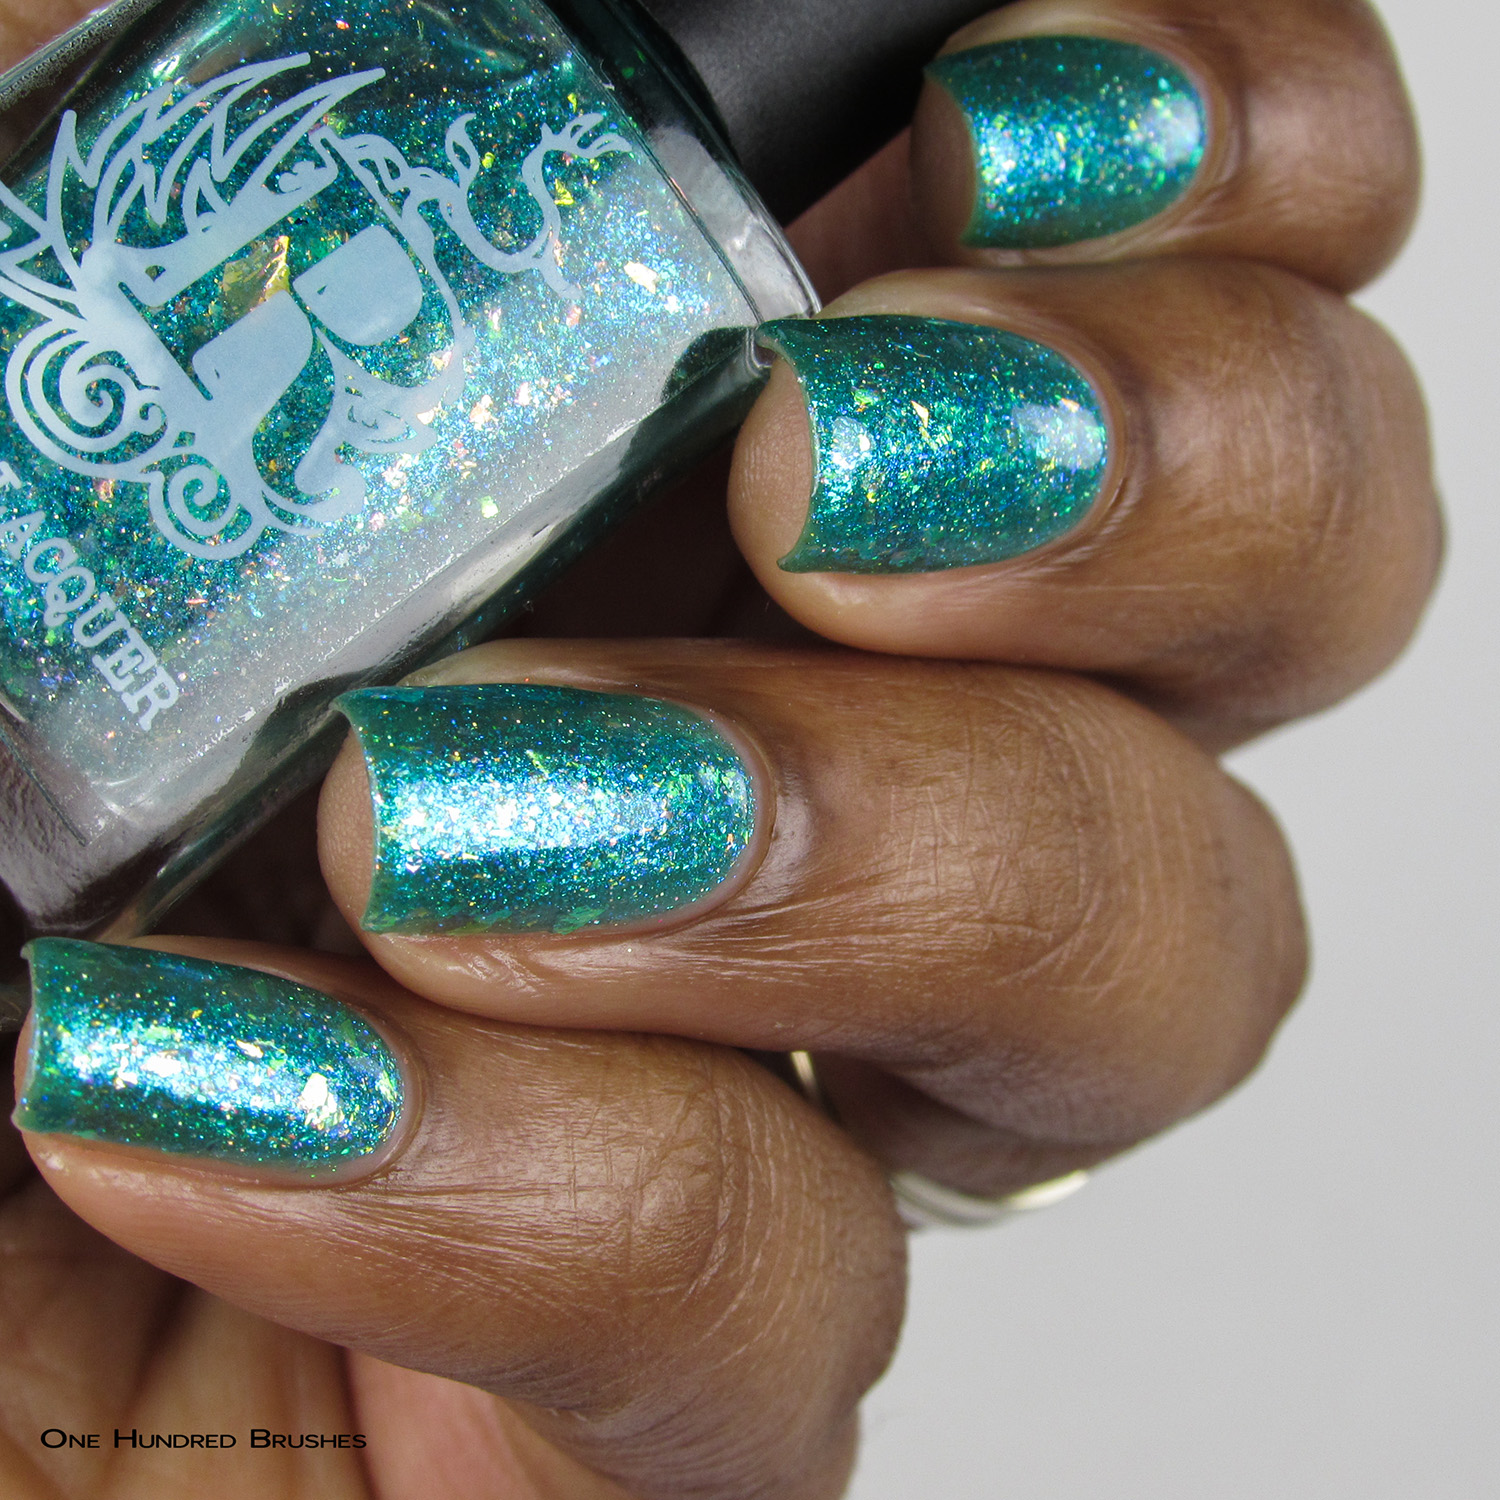 I Washed Up Like This - Bottle Side - Rogue Lacquer - Sirens of Summer June 2017